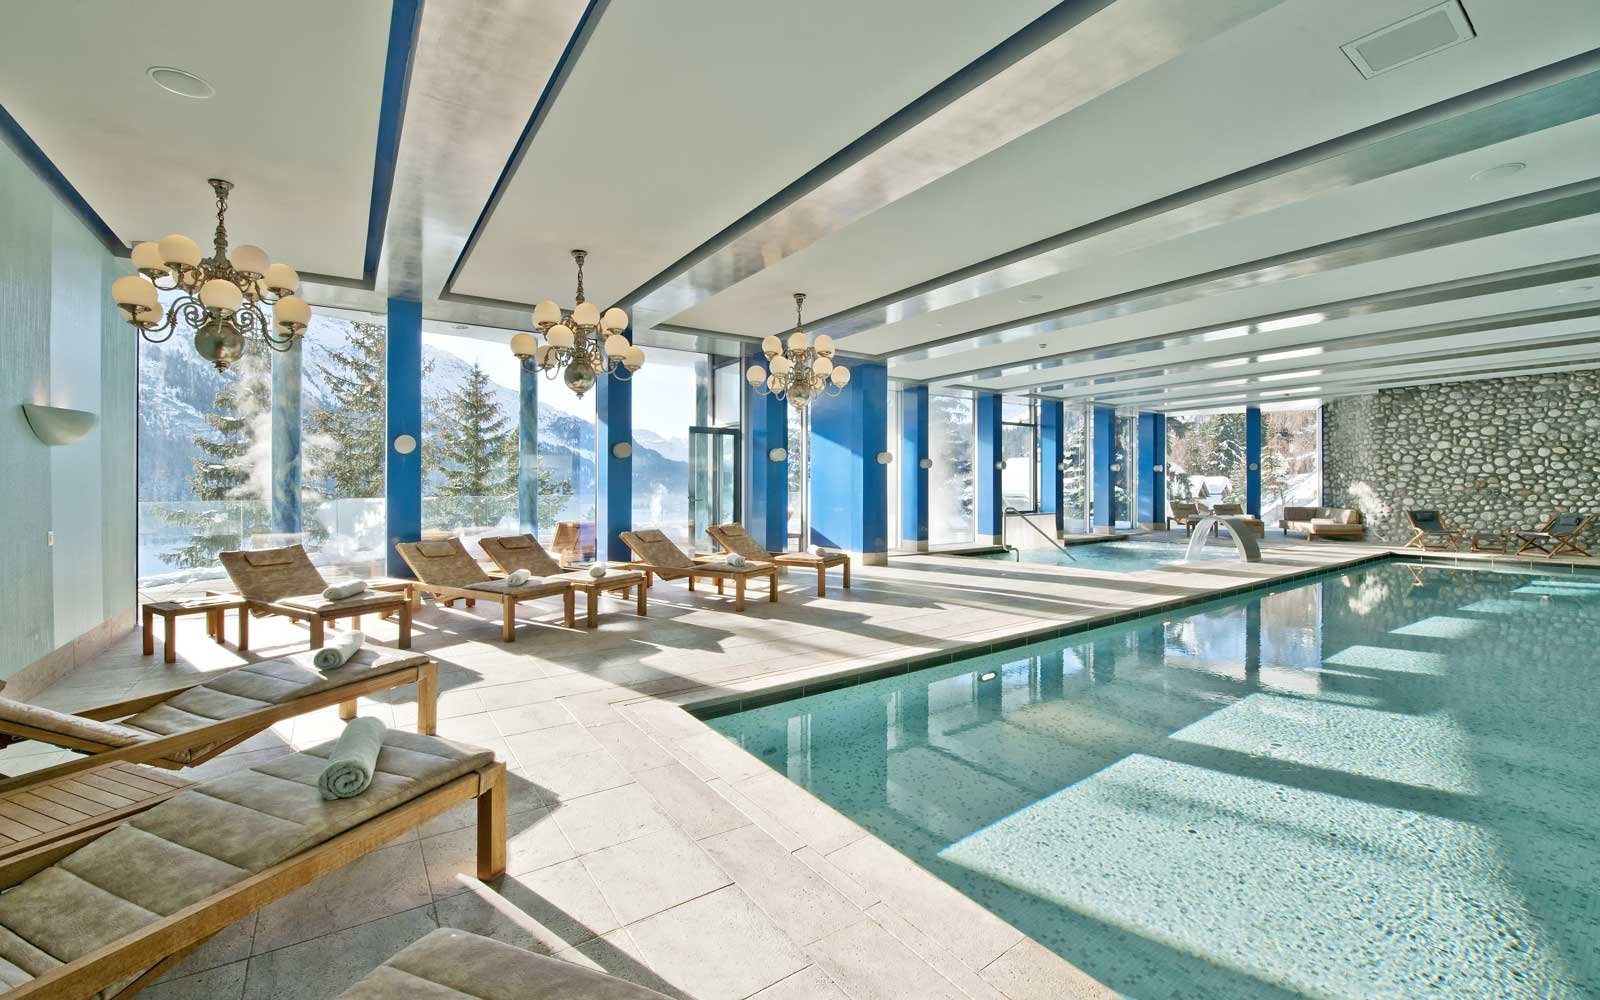 Spa pool at the Carlton Hotel St. Moritz